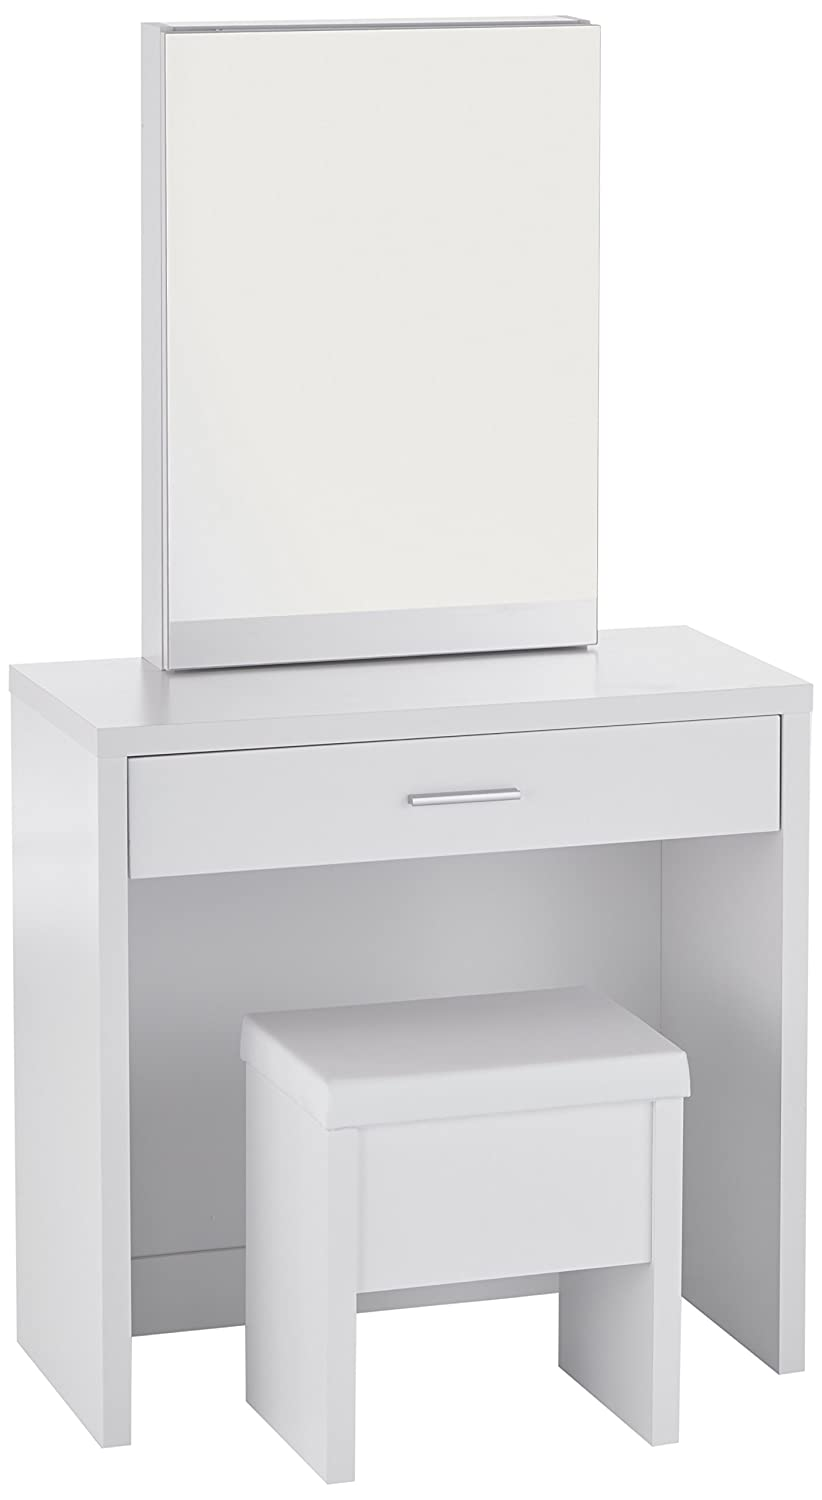 Amazon com 2 piece vanity set with hidden mirror storage and lift top stool white kitchen dining